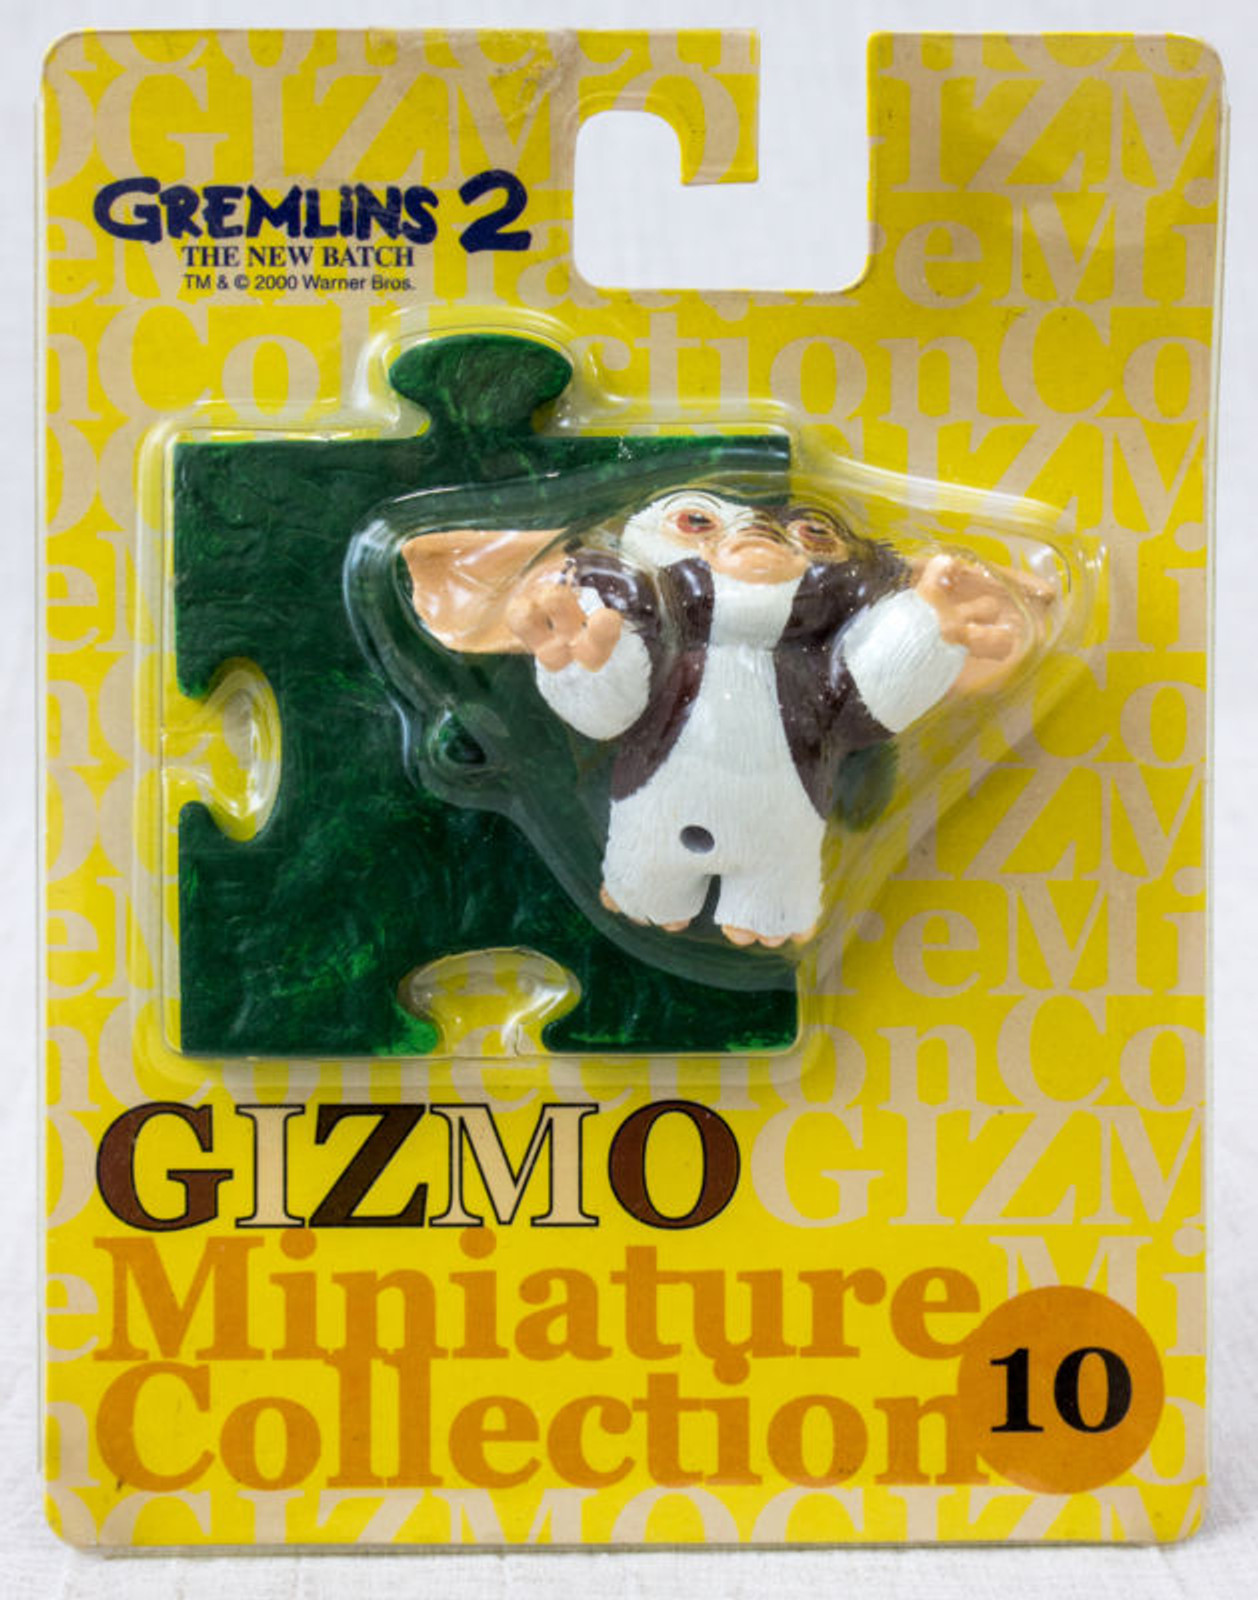 Gremlins 2 The New Batch Gizmo Miniature Figure Collection 10 Jun Planning JAPAN